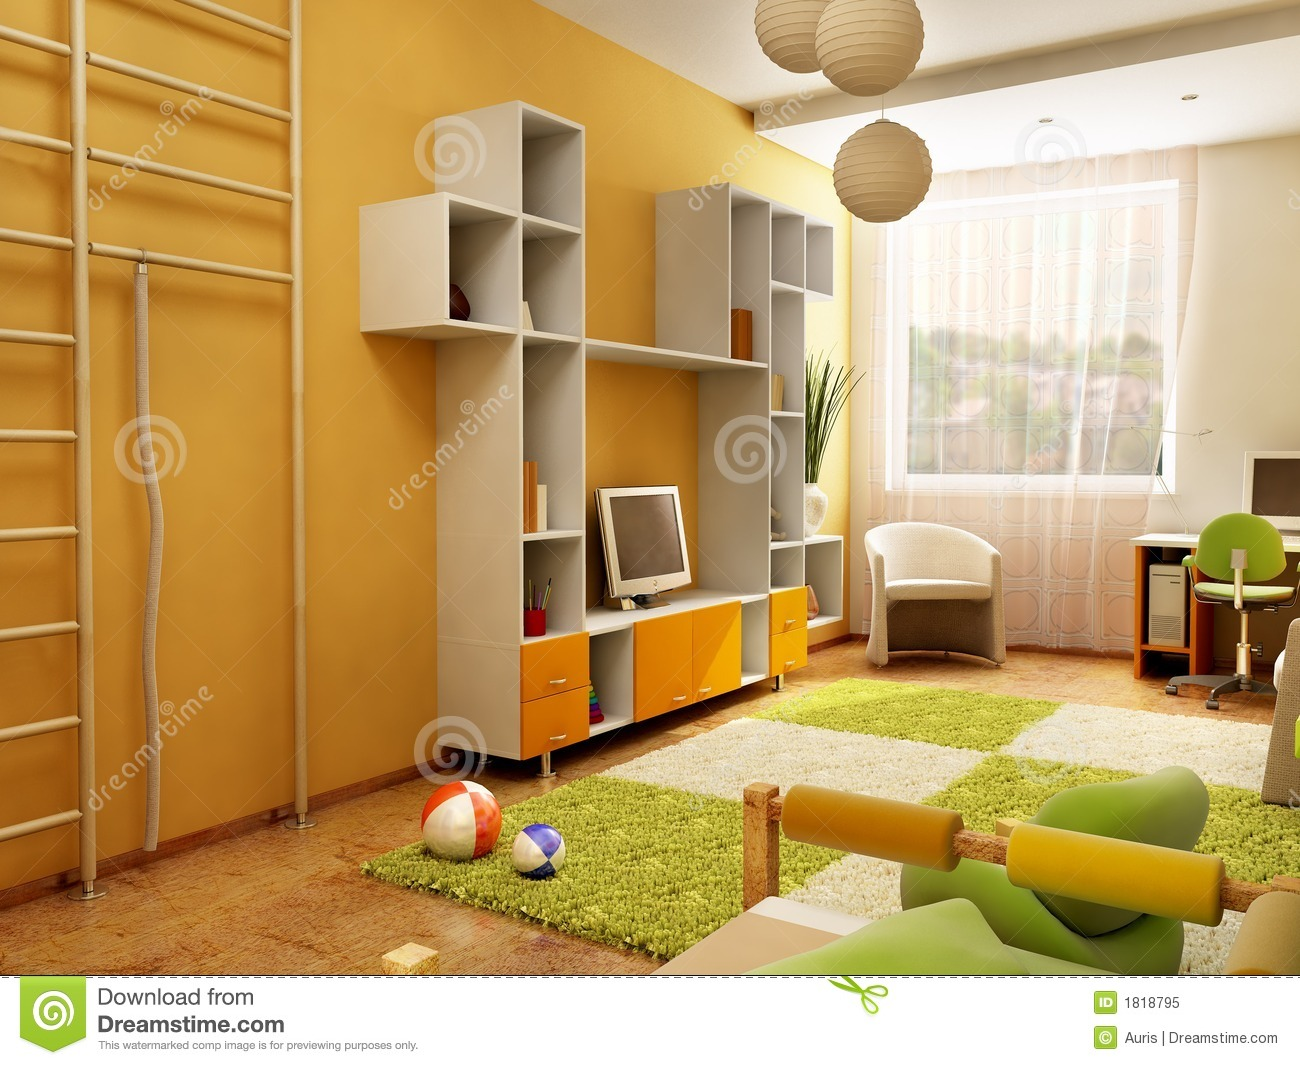 Interior Of The Children 39 S Room Royalty Free Stock Photo Image 1818795